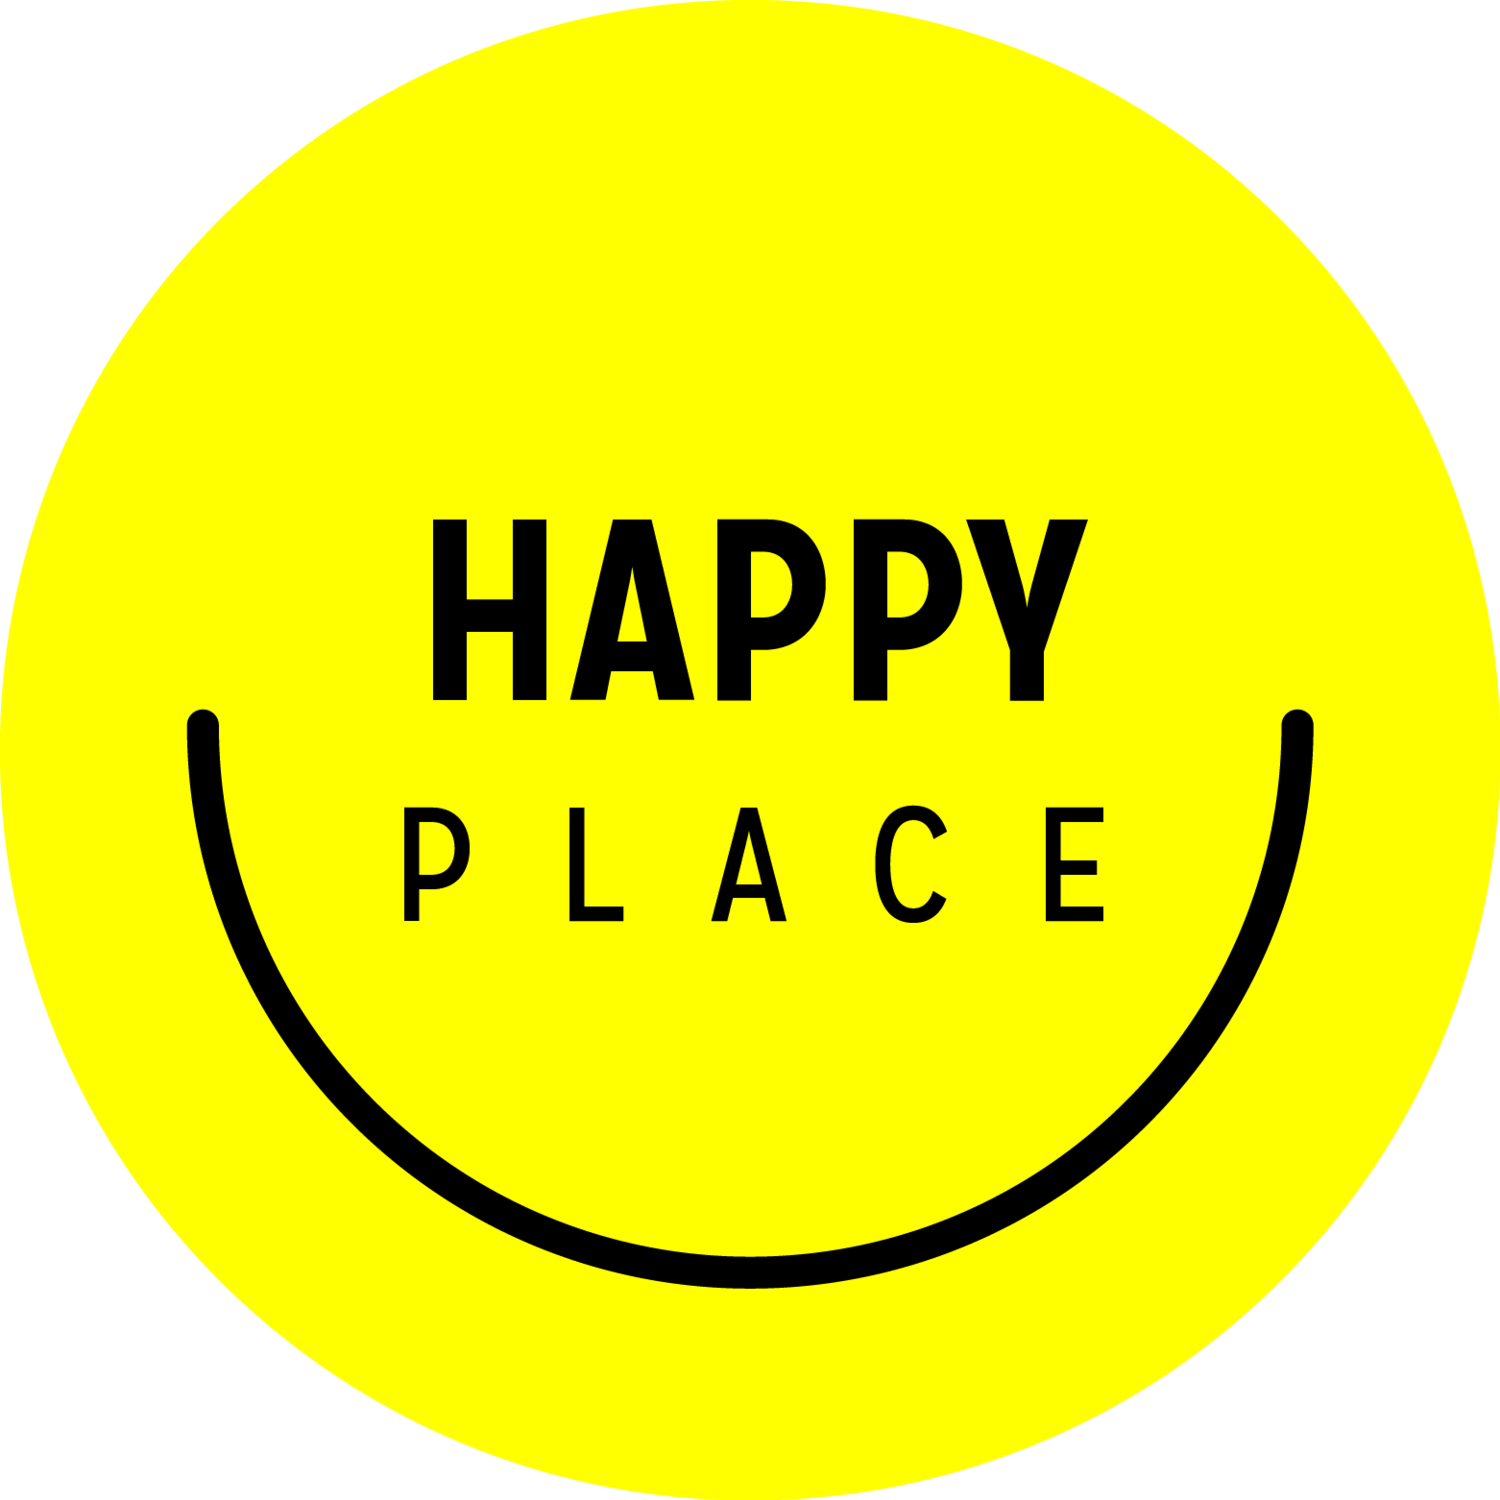 happyplace-type-yellowcircle-150.png?format=1500w